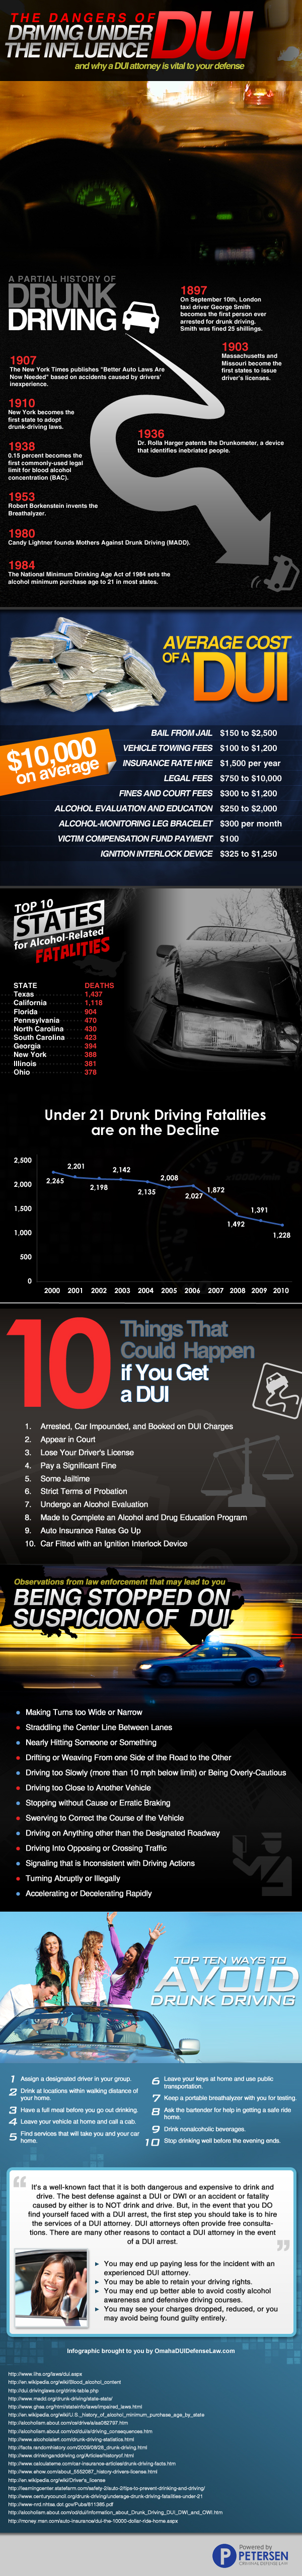 DUI costs, tips and information.